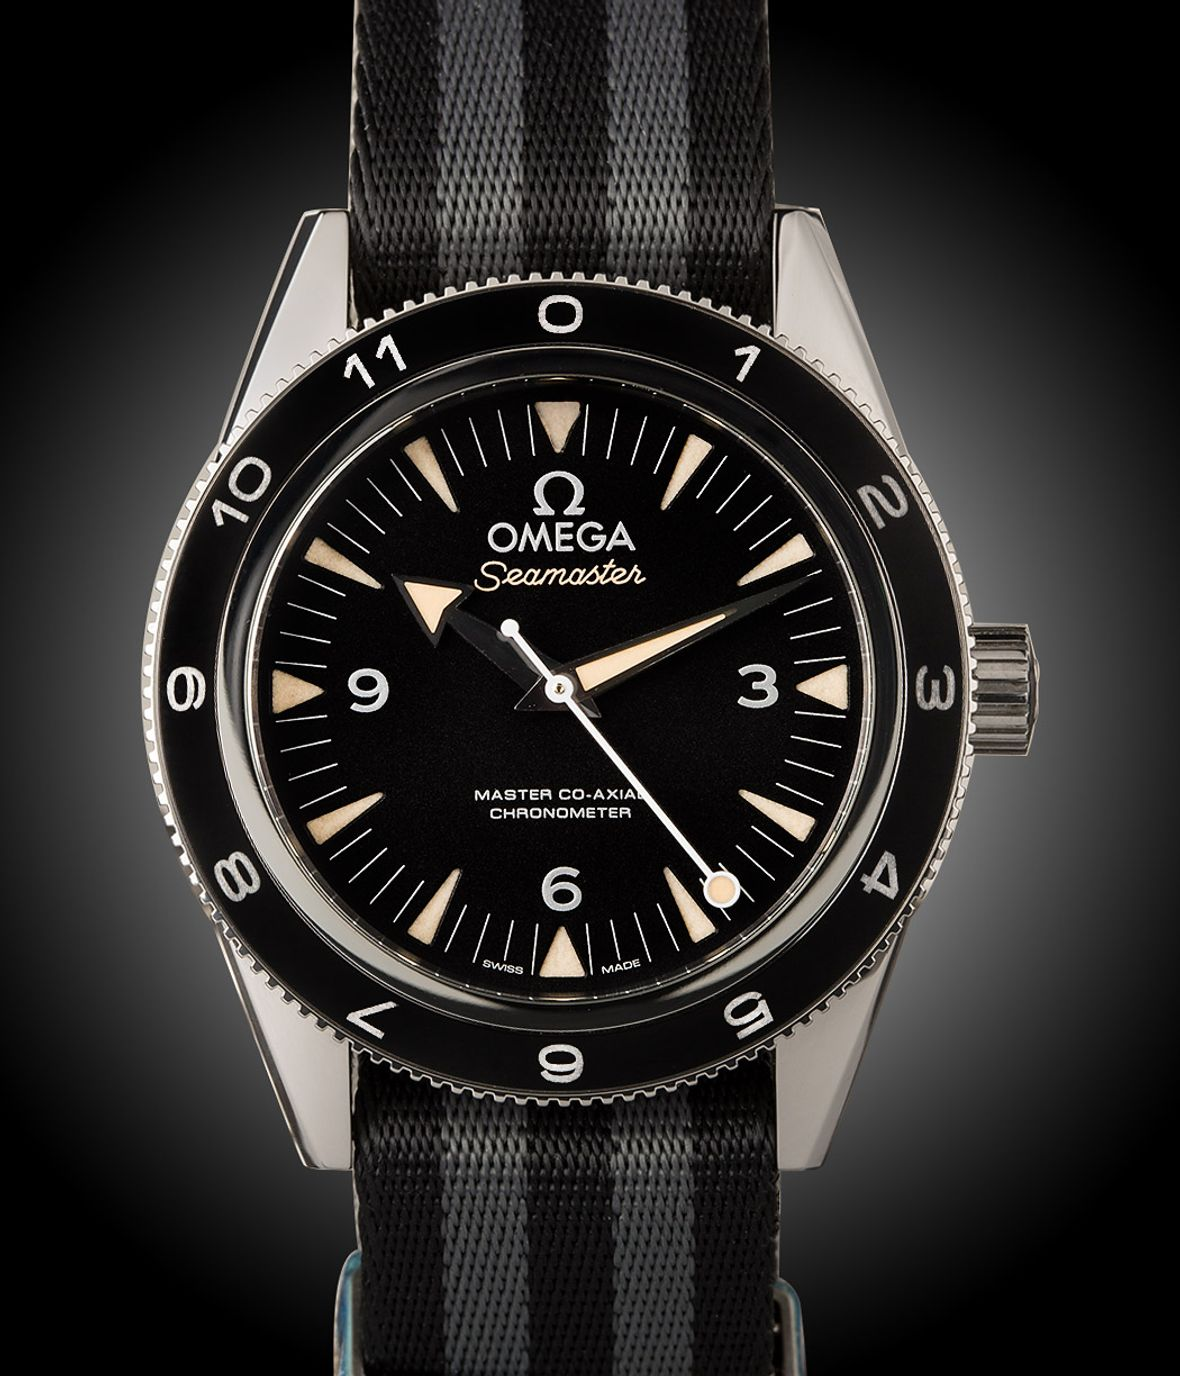 James Bond Omega Seamaster 300 Spectre Limited Edition